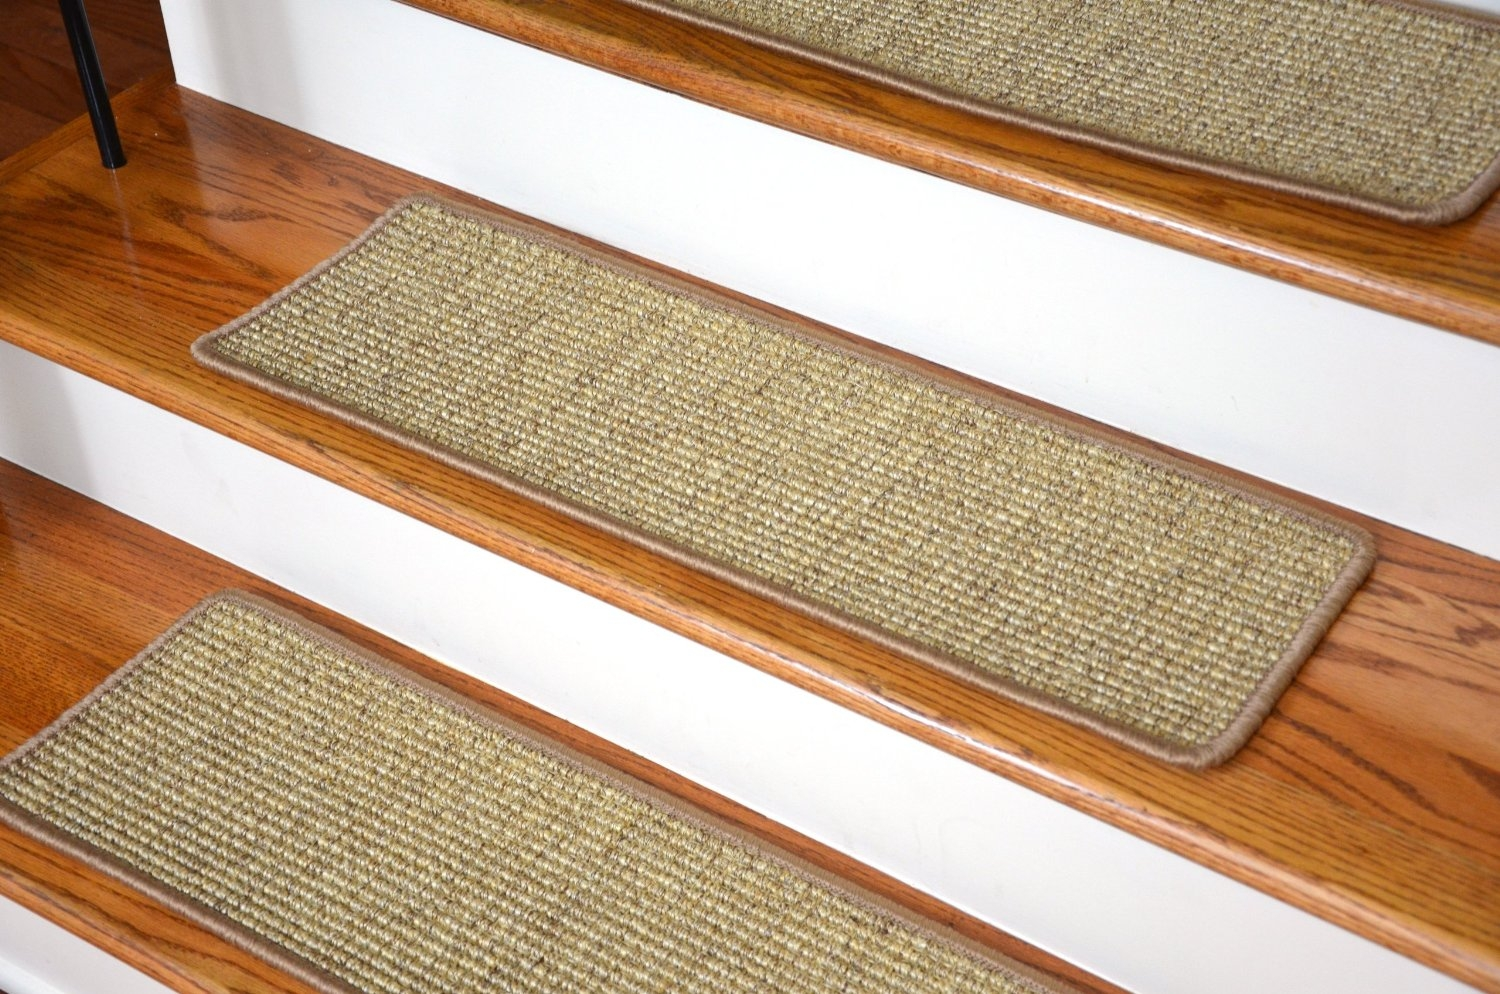 Easy Installing Carpet Stair Treads Stair Design Ideas With Stair Treads And Rugs (View 14 of 15)